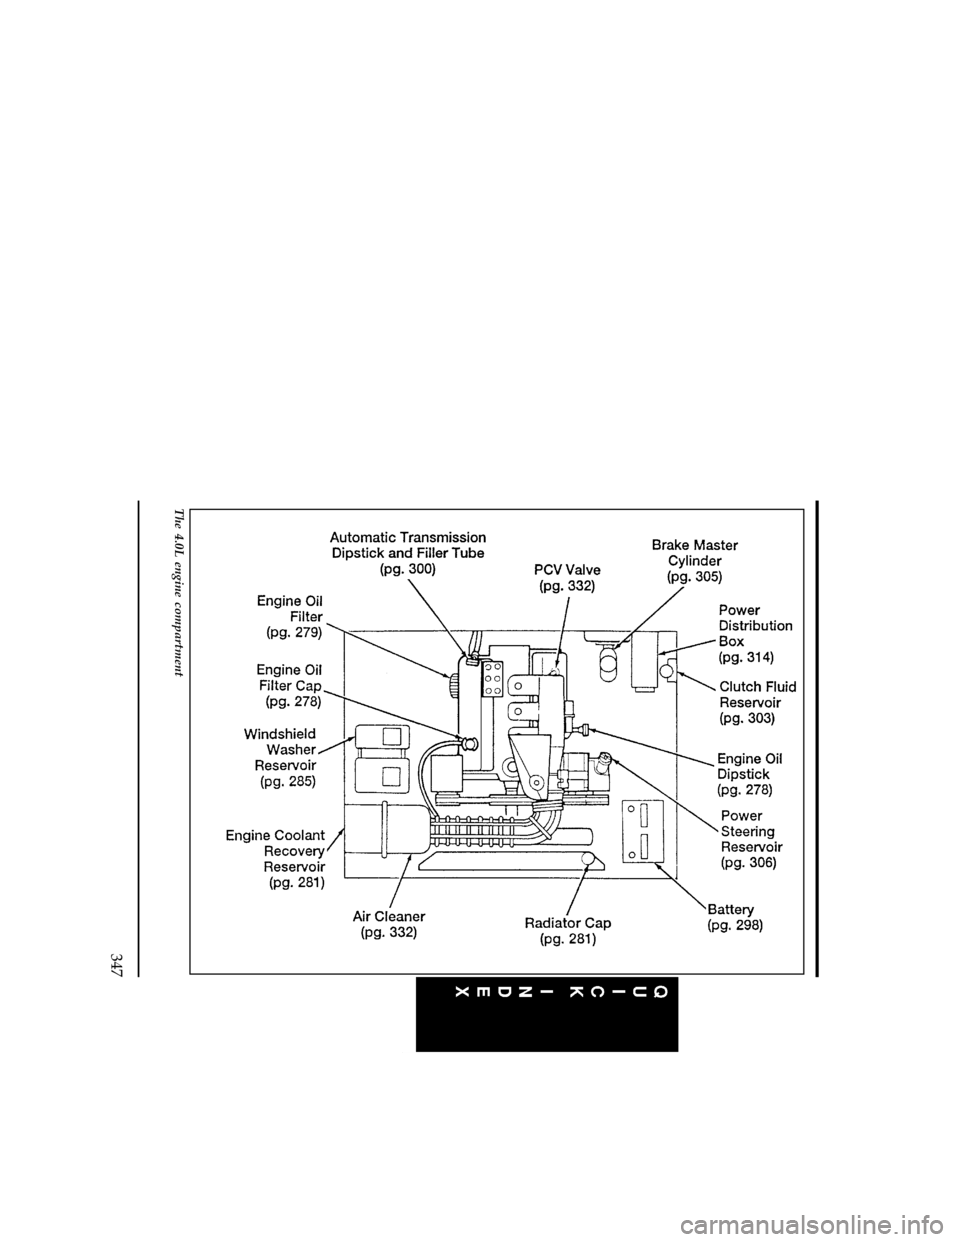 FORD RANGER 1996 2.G Owners Manual (369 Pages), Page 350